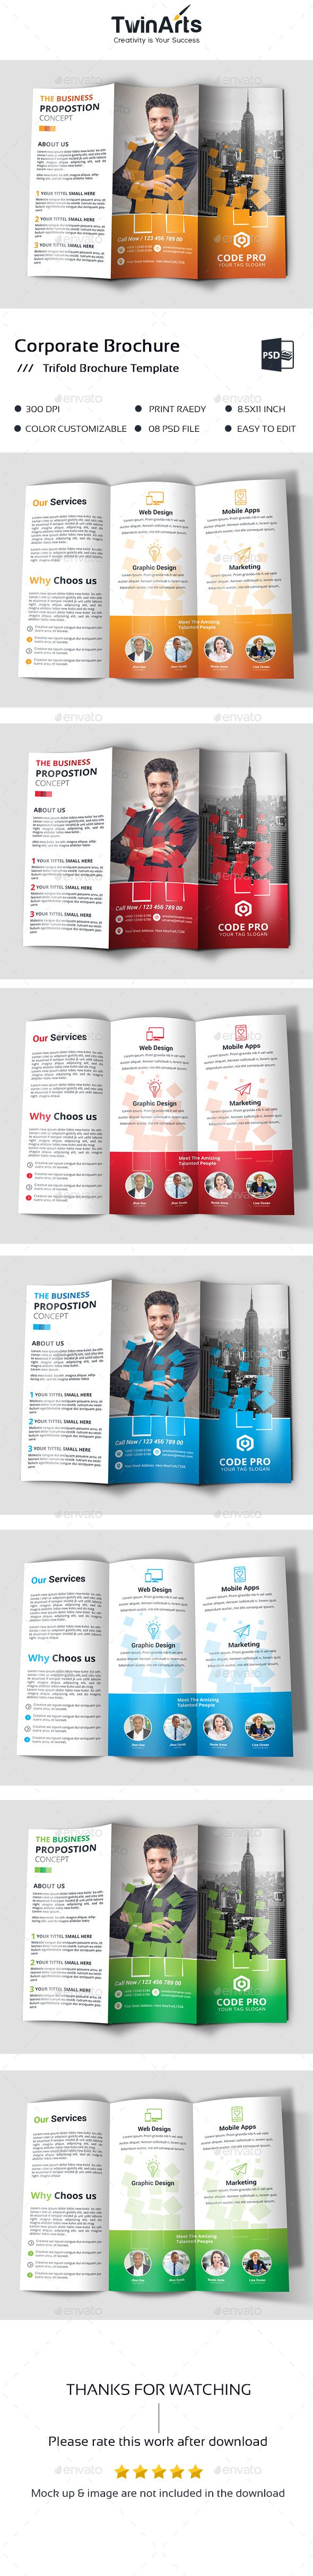 small brochure template - trifold brochure